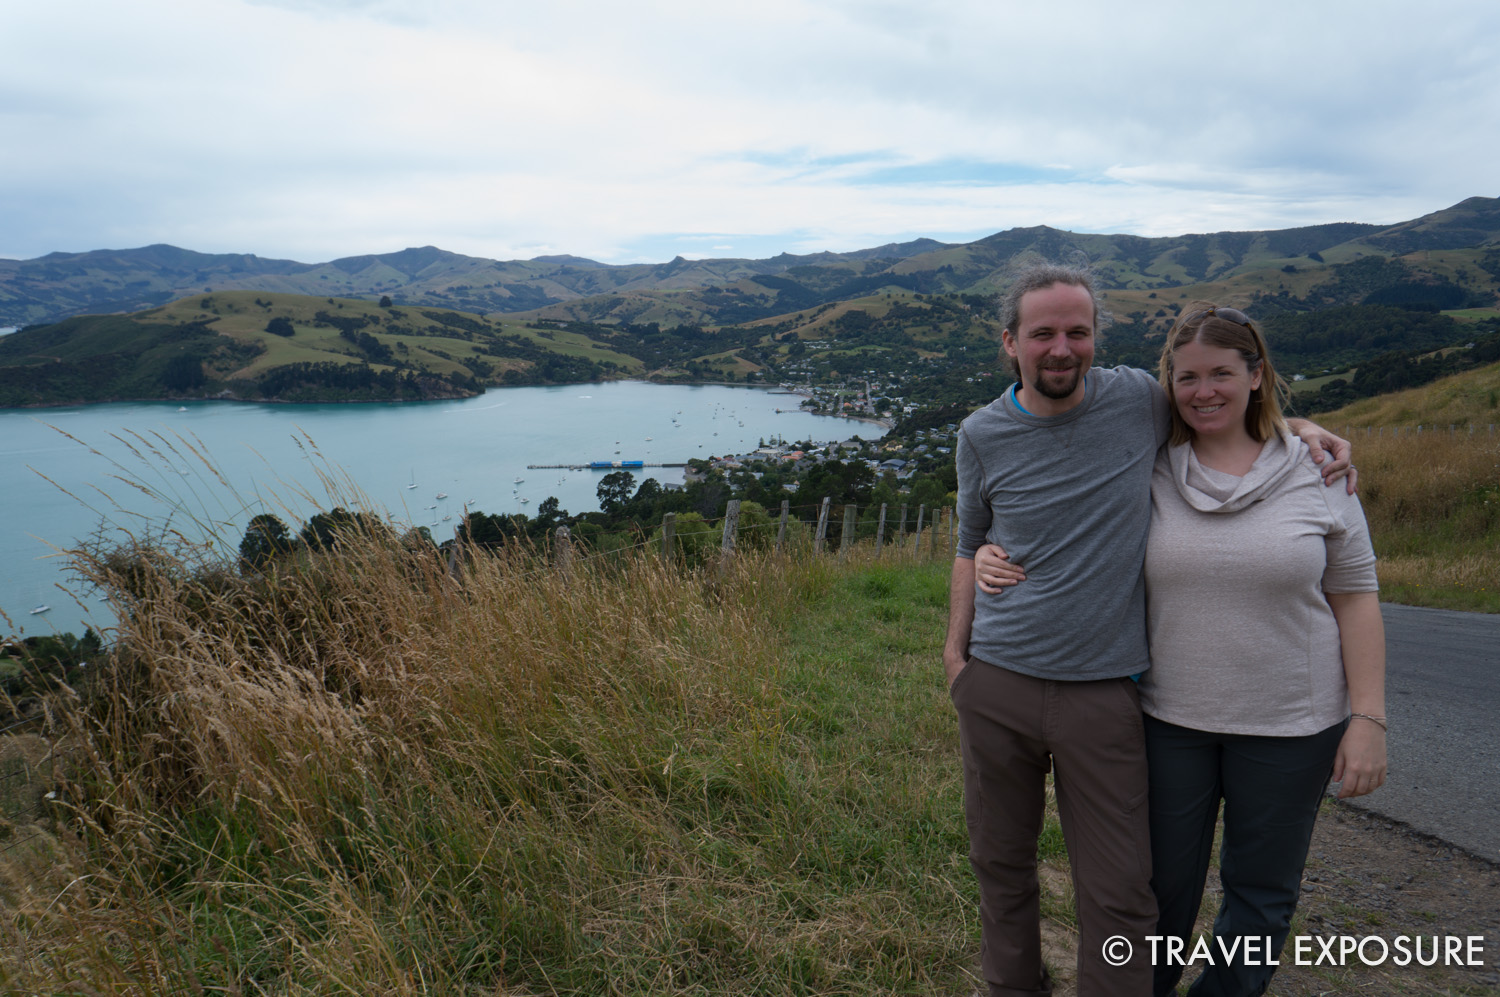 Overlooking Akaroa harbor, formed from a flooded ancient volcano